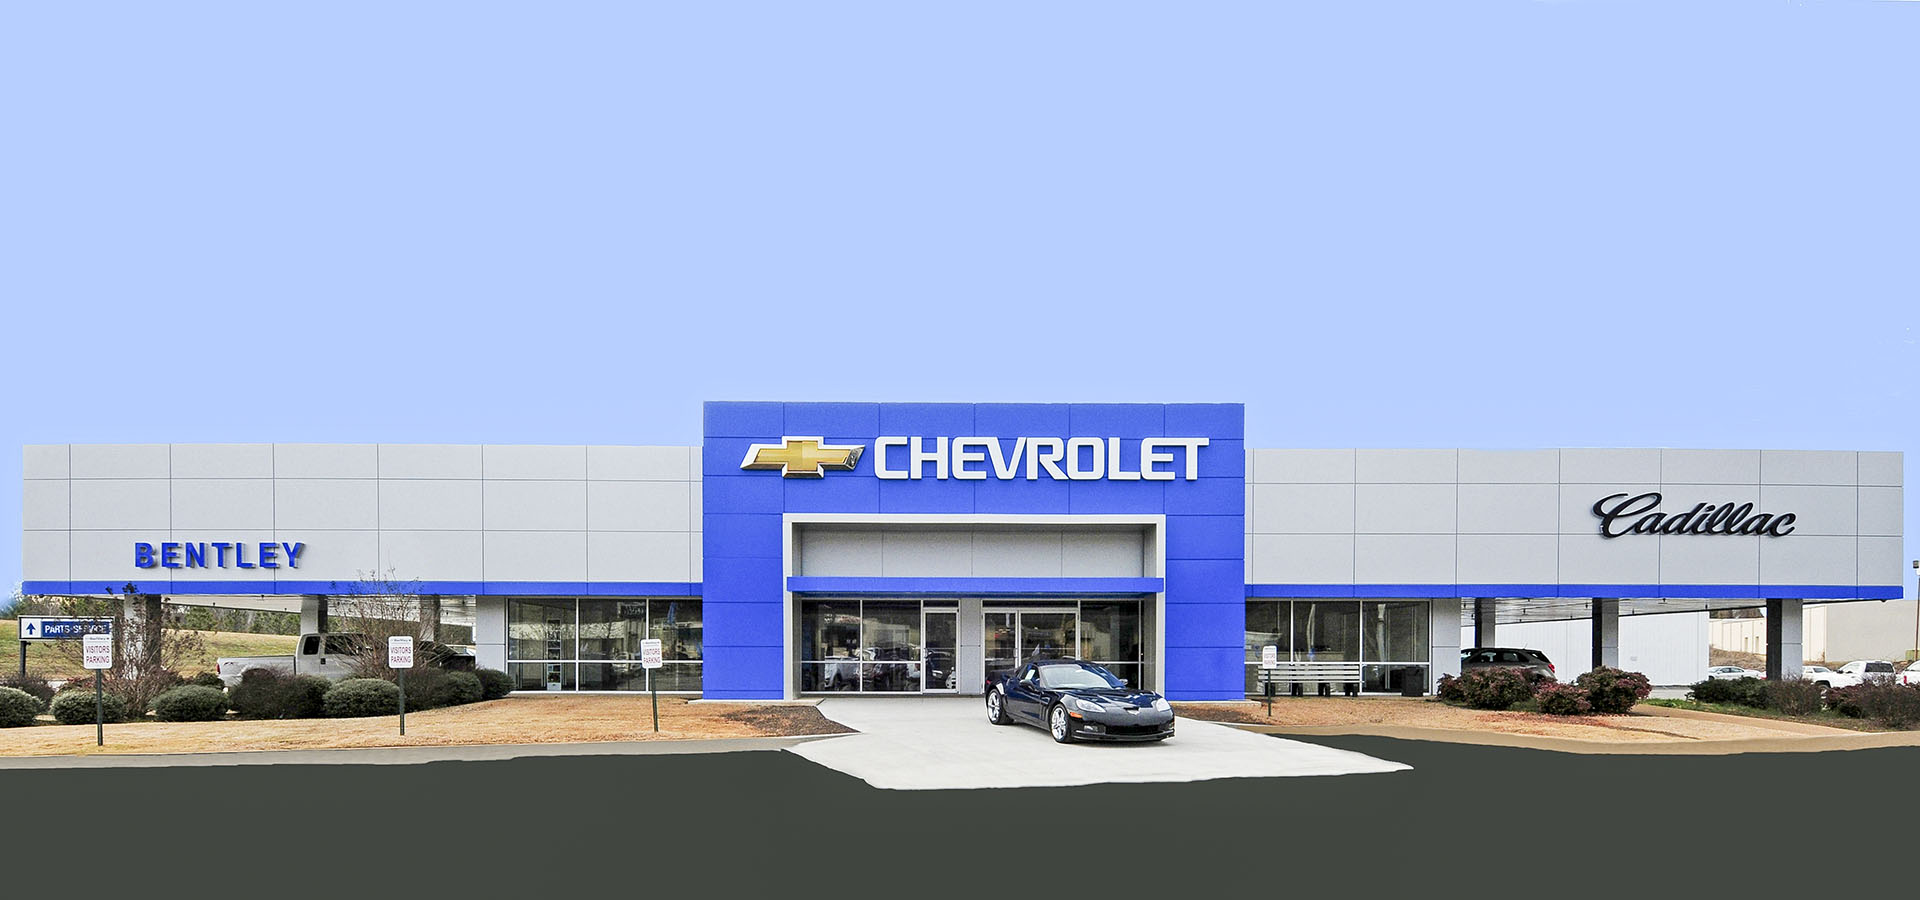 Bentley Chevrolet | Florence Alabama | Brindley Construction, LLC.